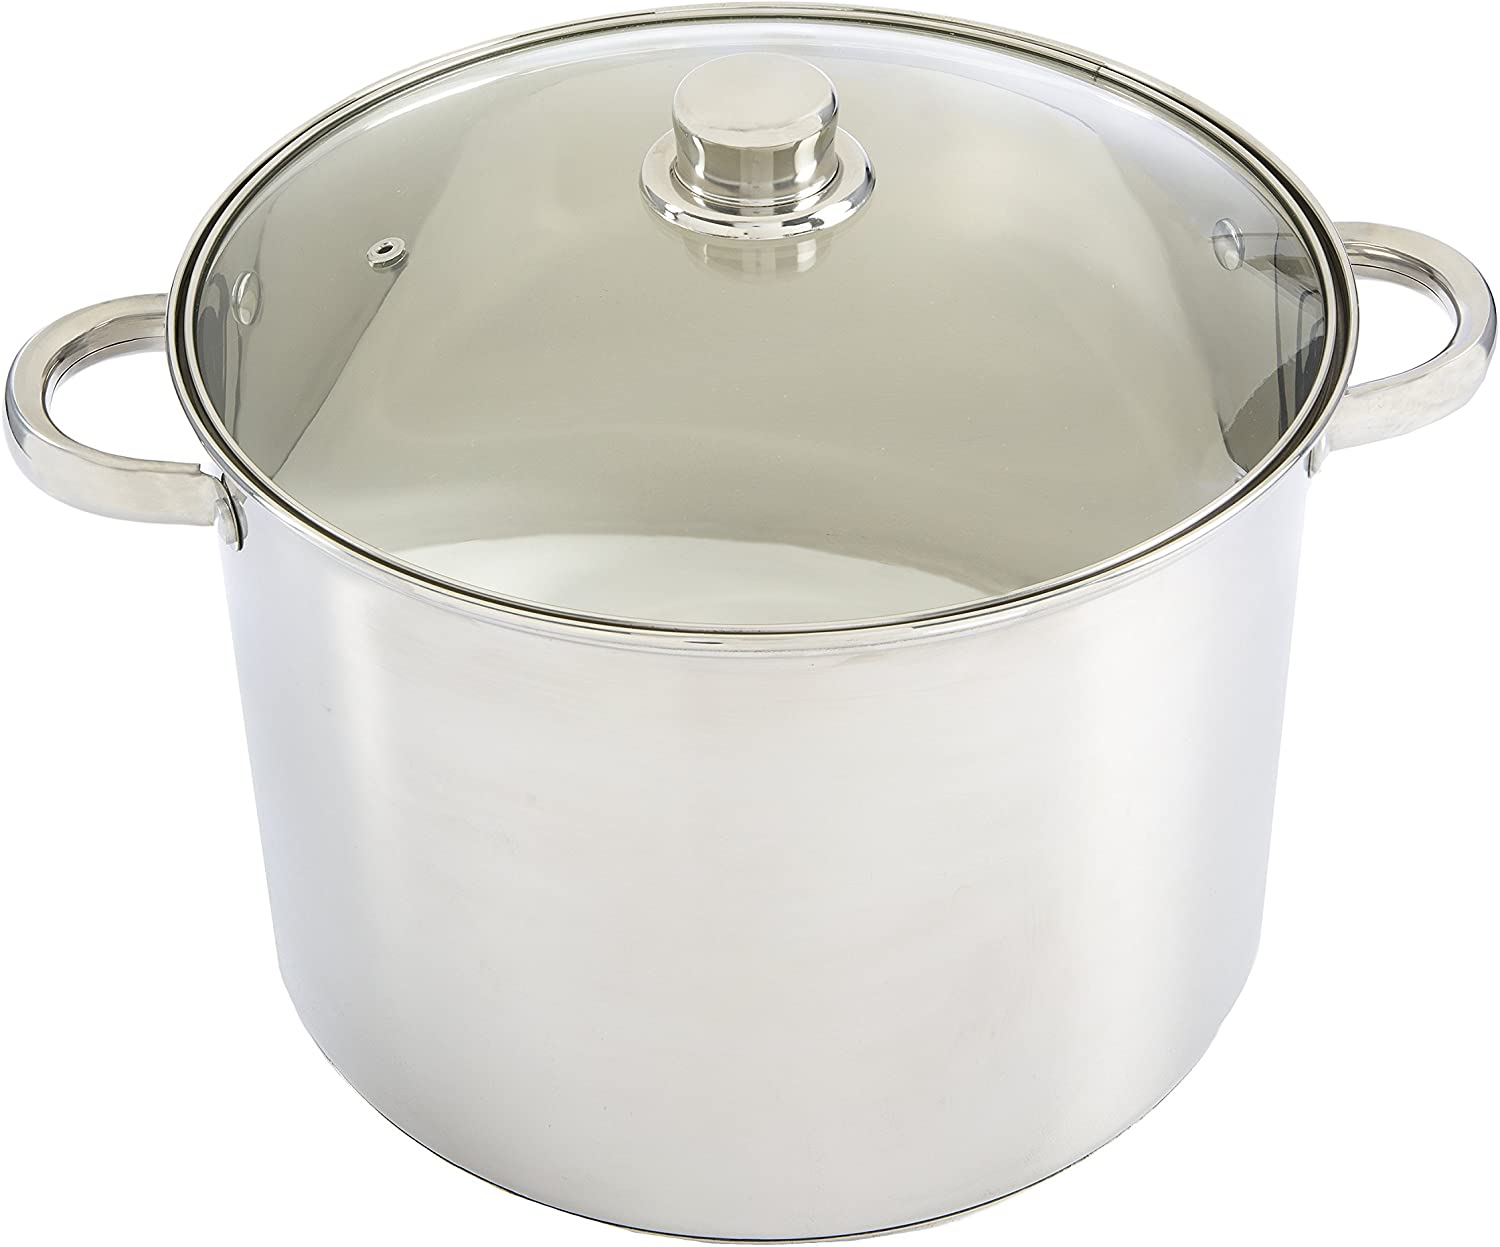 Ecolution Pure Intentions Stock Pot 12 Quart - Vented Tempered Glass Lid - Stainless Steel